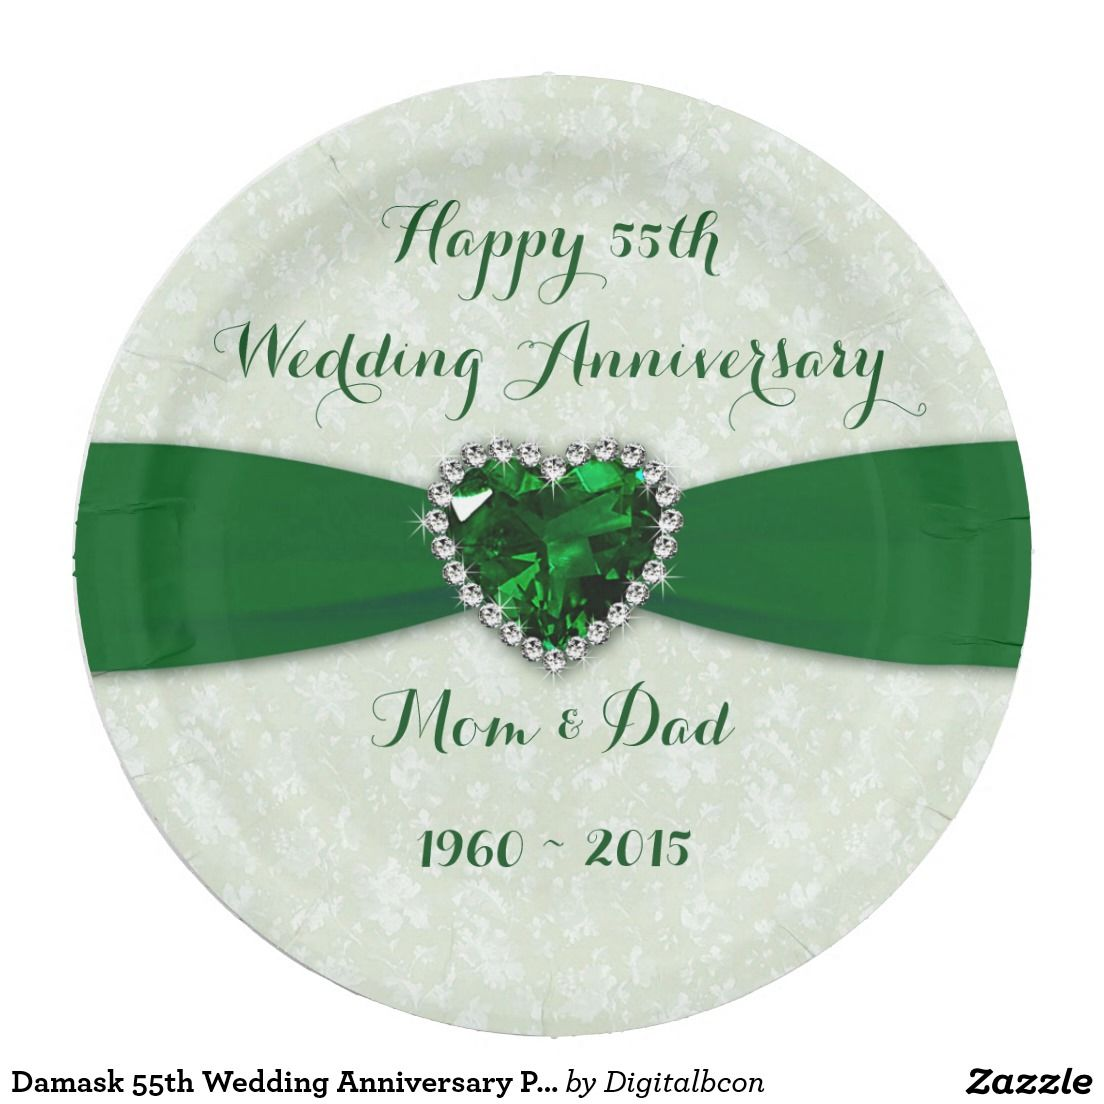 Soft Damask 55th Wedding Anniversary Paper Plate 55th Anniversary